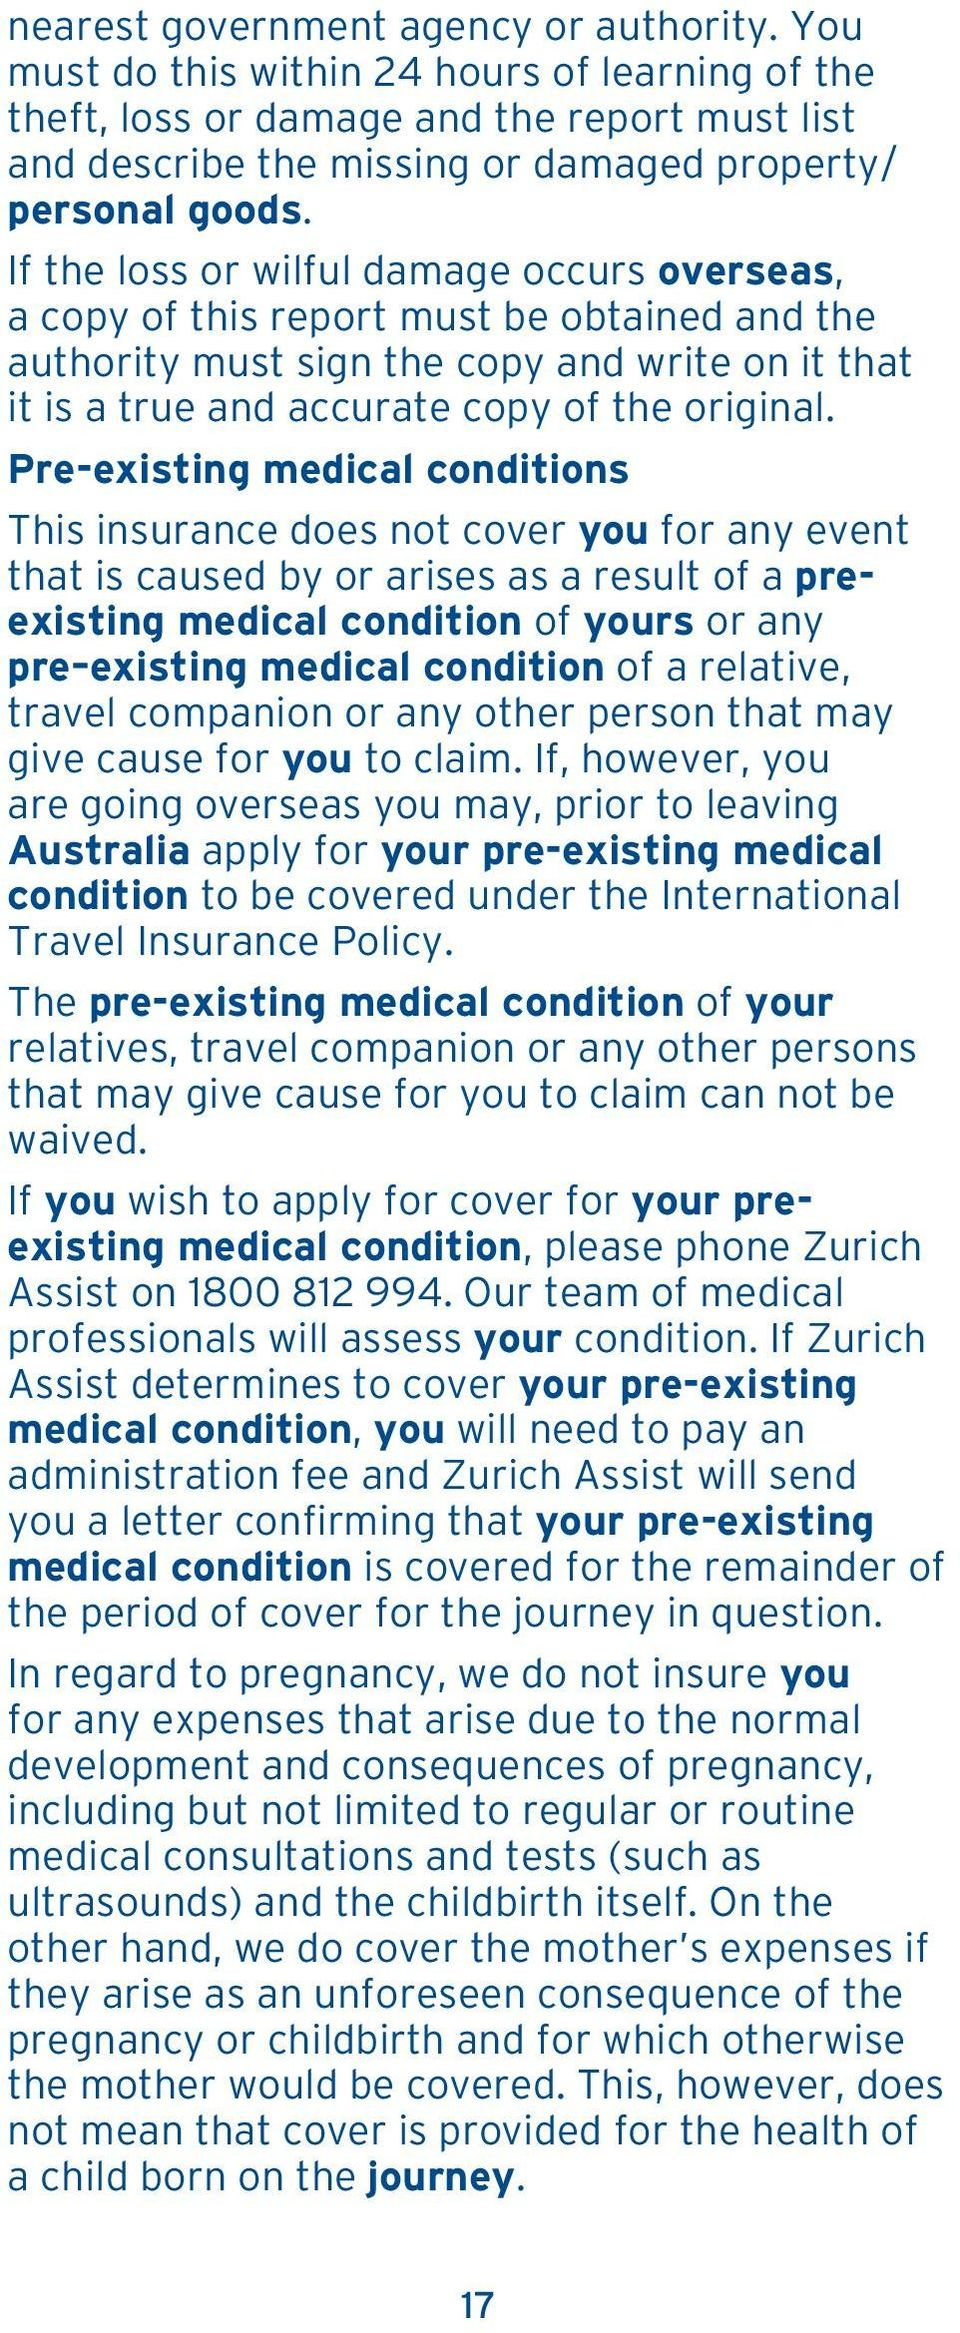 Pre-existing medical conditions This insurance does not cover you for any event that is caused by or arises as a result of a preexisting medical condition of yours or any pre existing medical